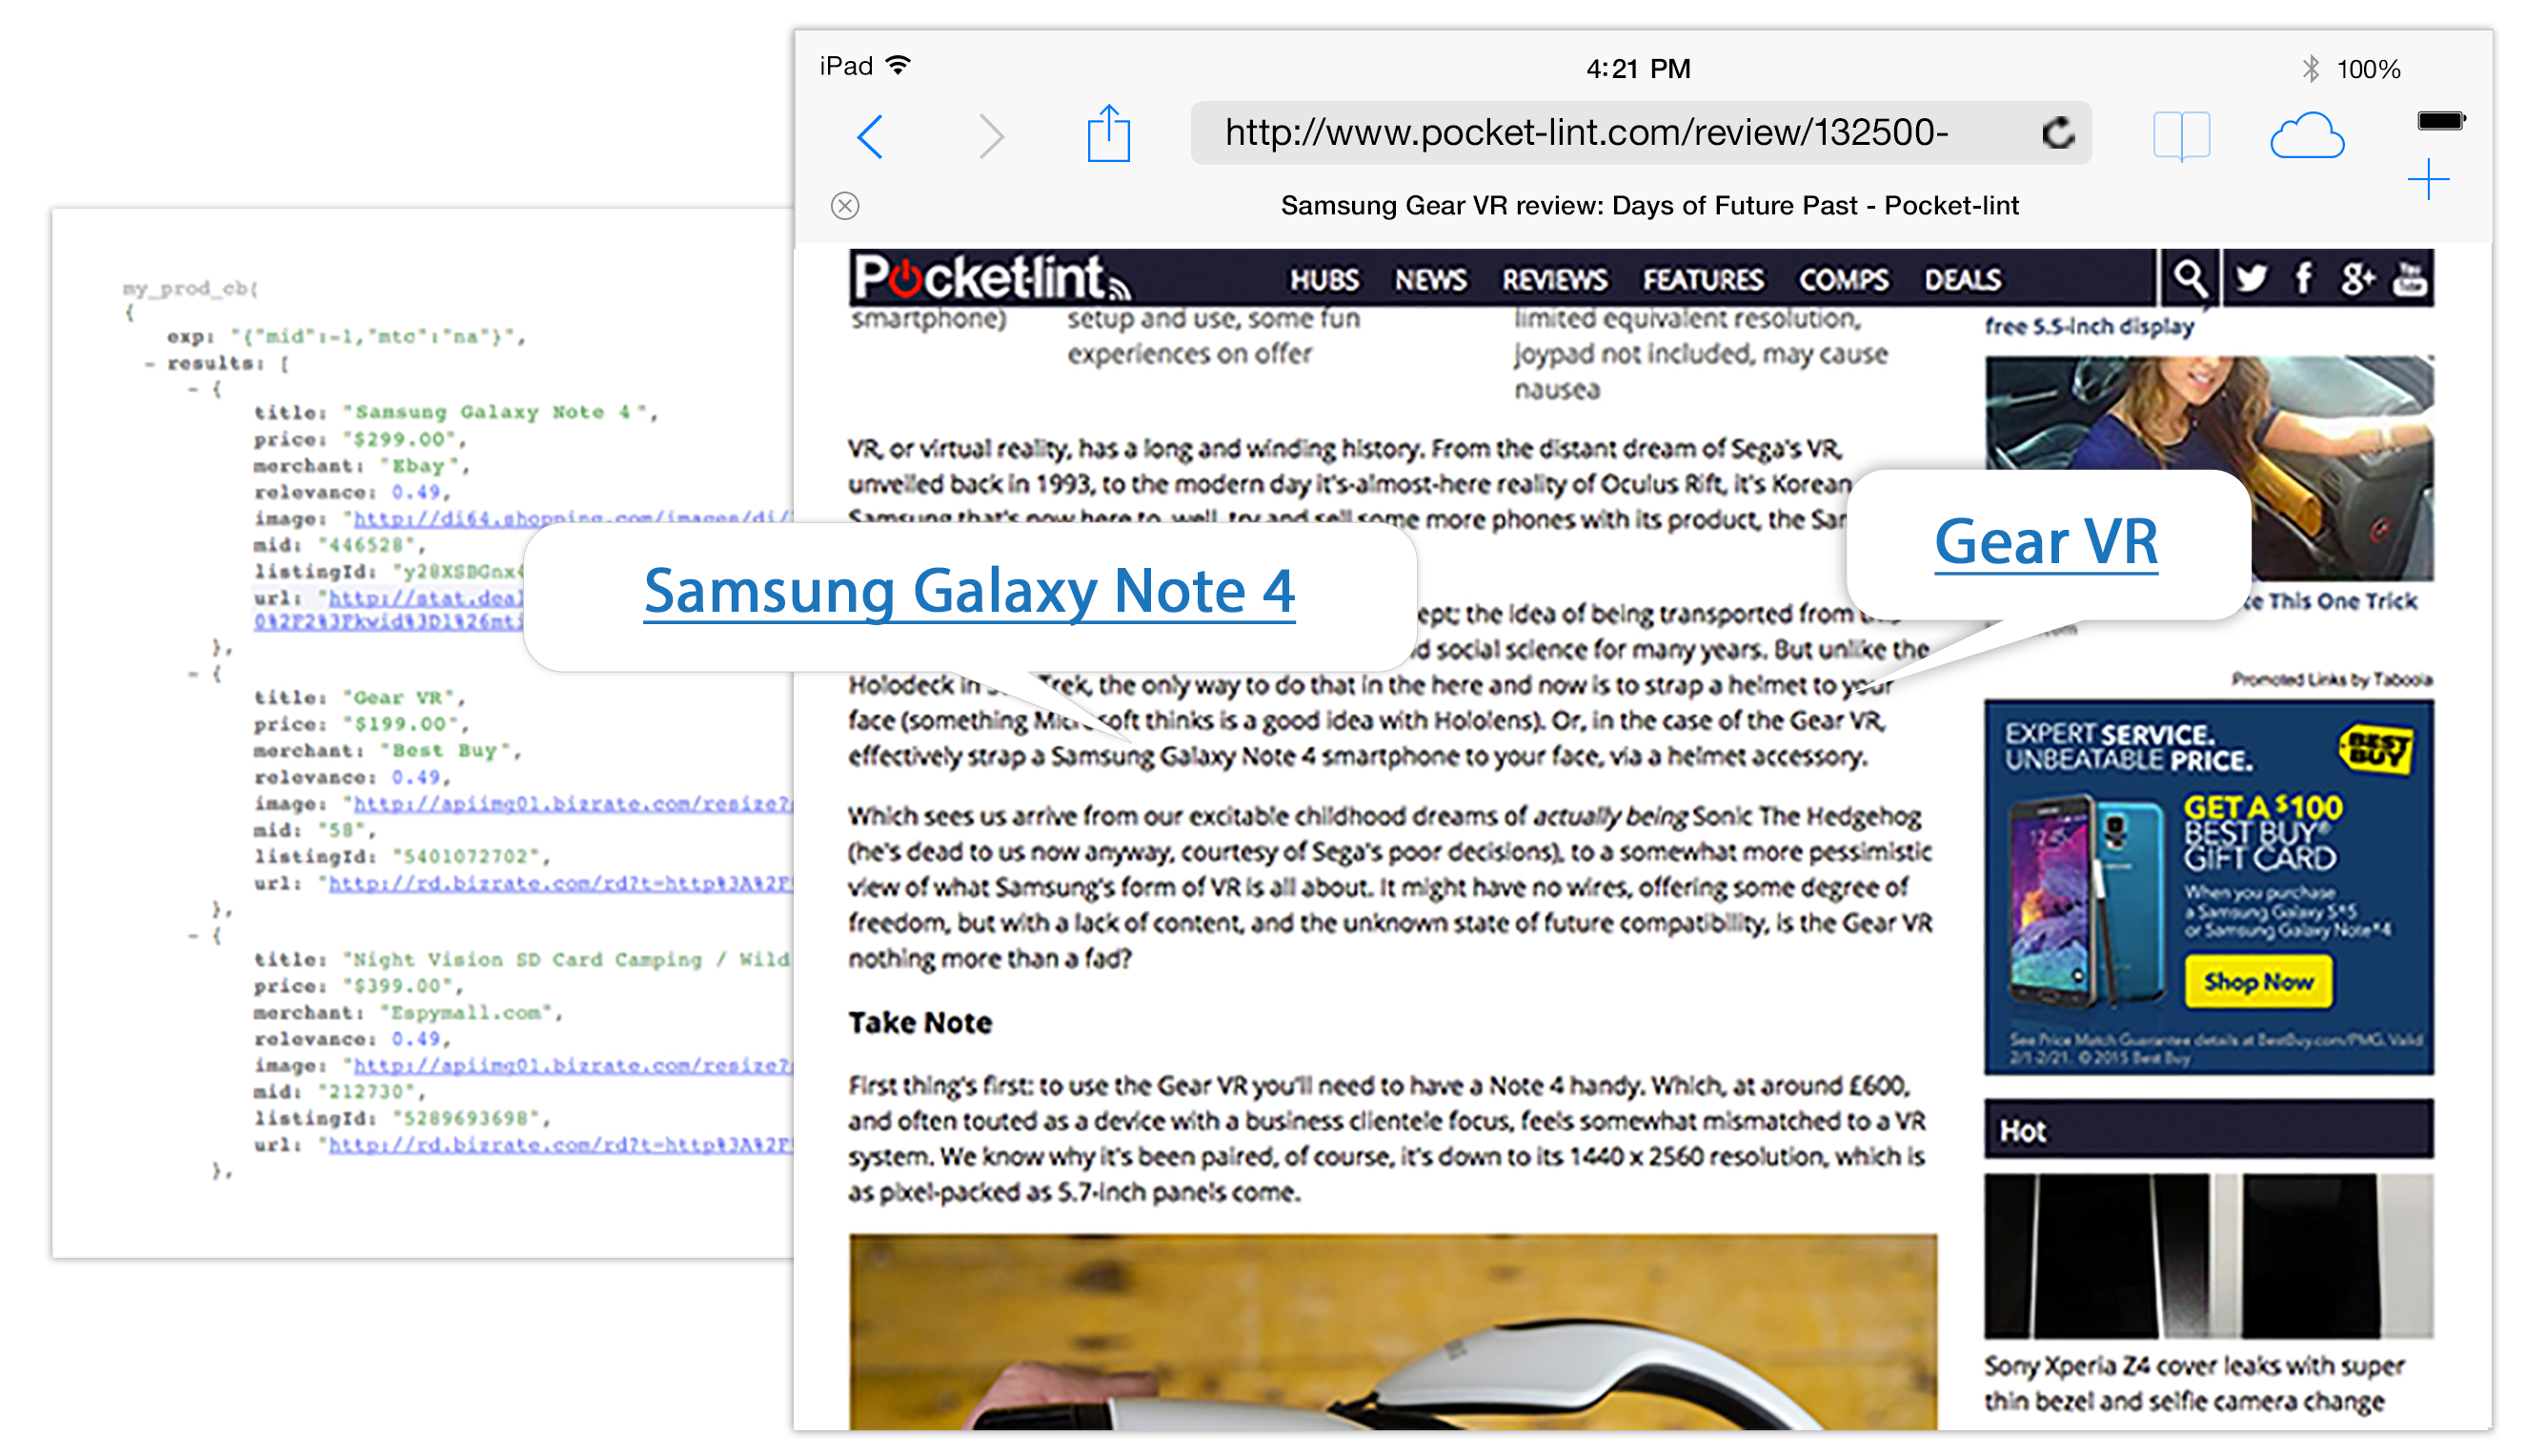 Webpage screenshot of ipad browser pocketlint smartphone review showing Viglink and coding links to Galaxy Note 4